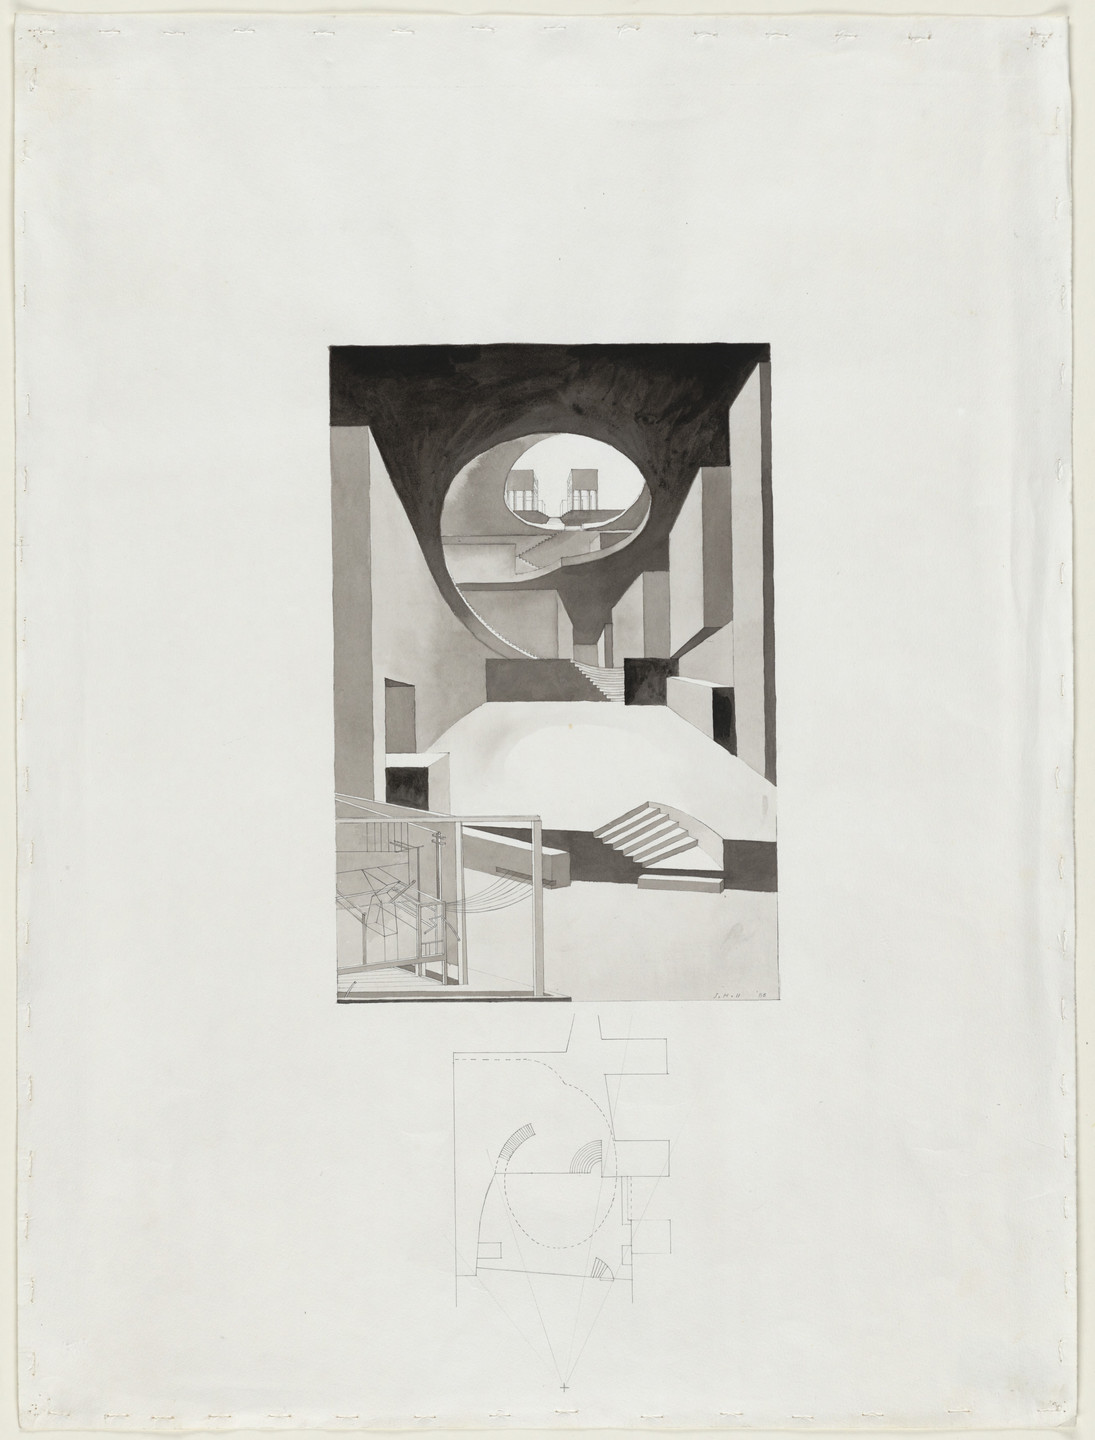 Steven Holl. Porta Vittoria, project, Milan, Italy, View at elliptical passage, perspective and plan. 1986